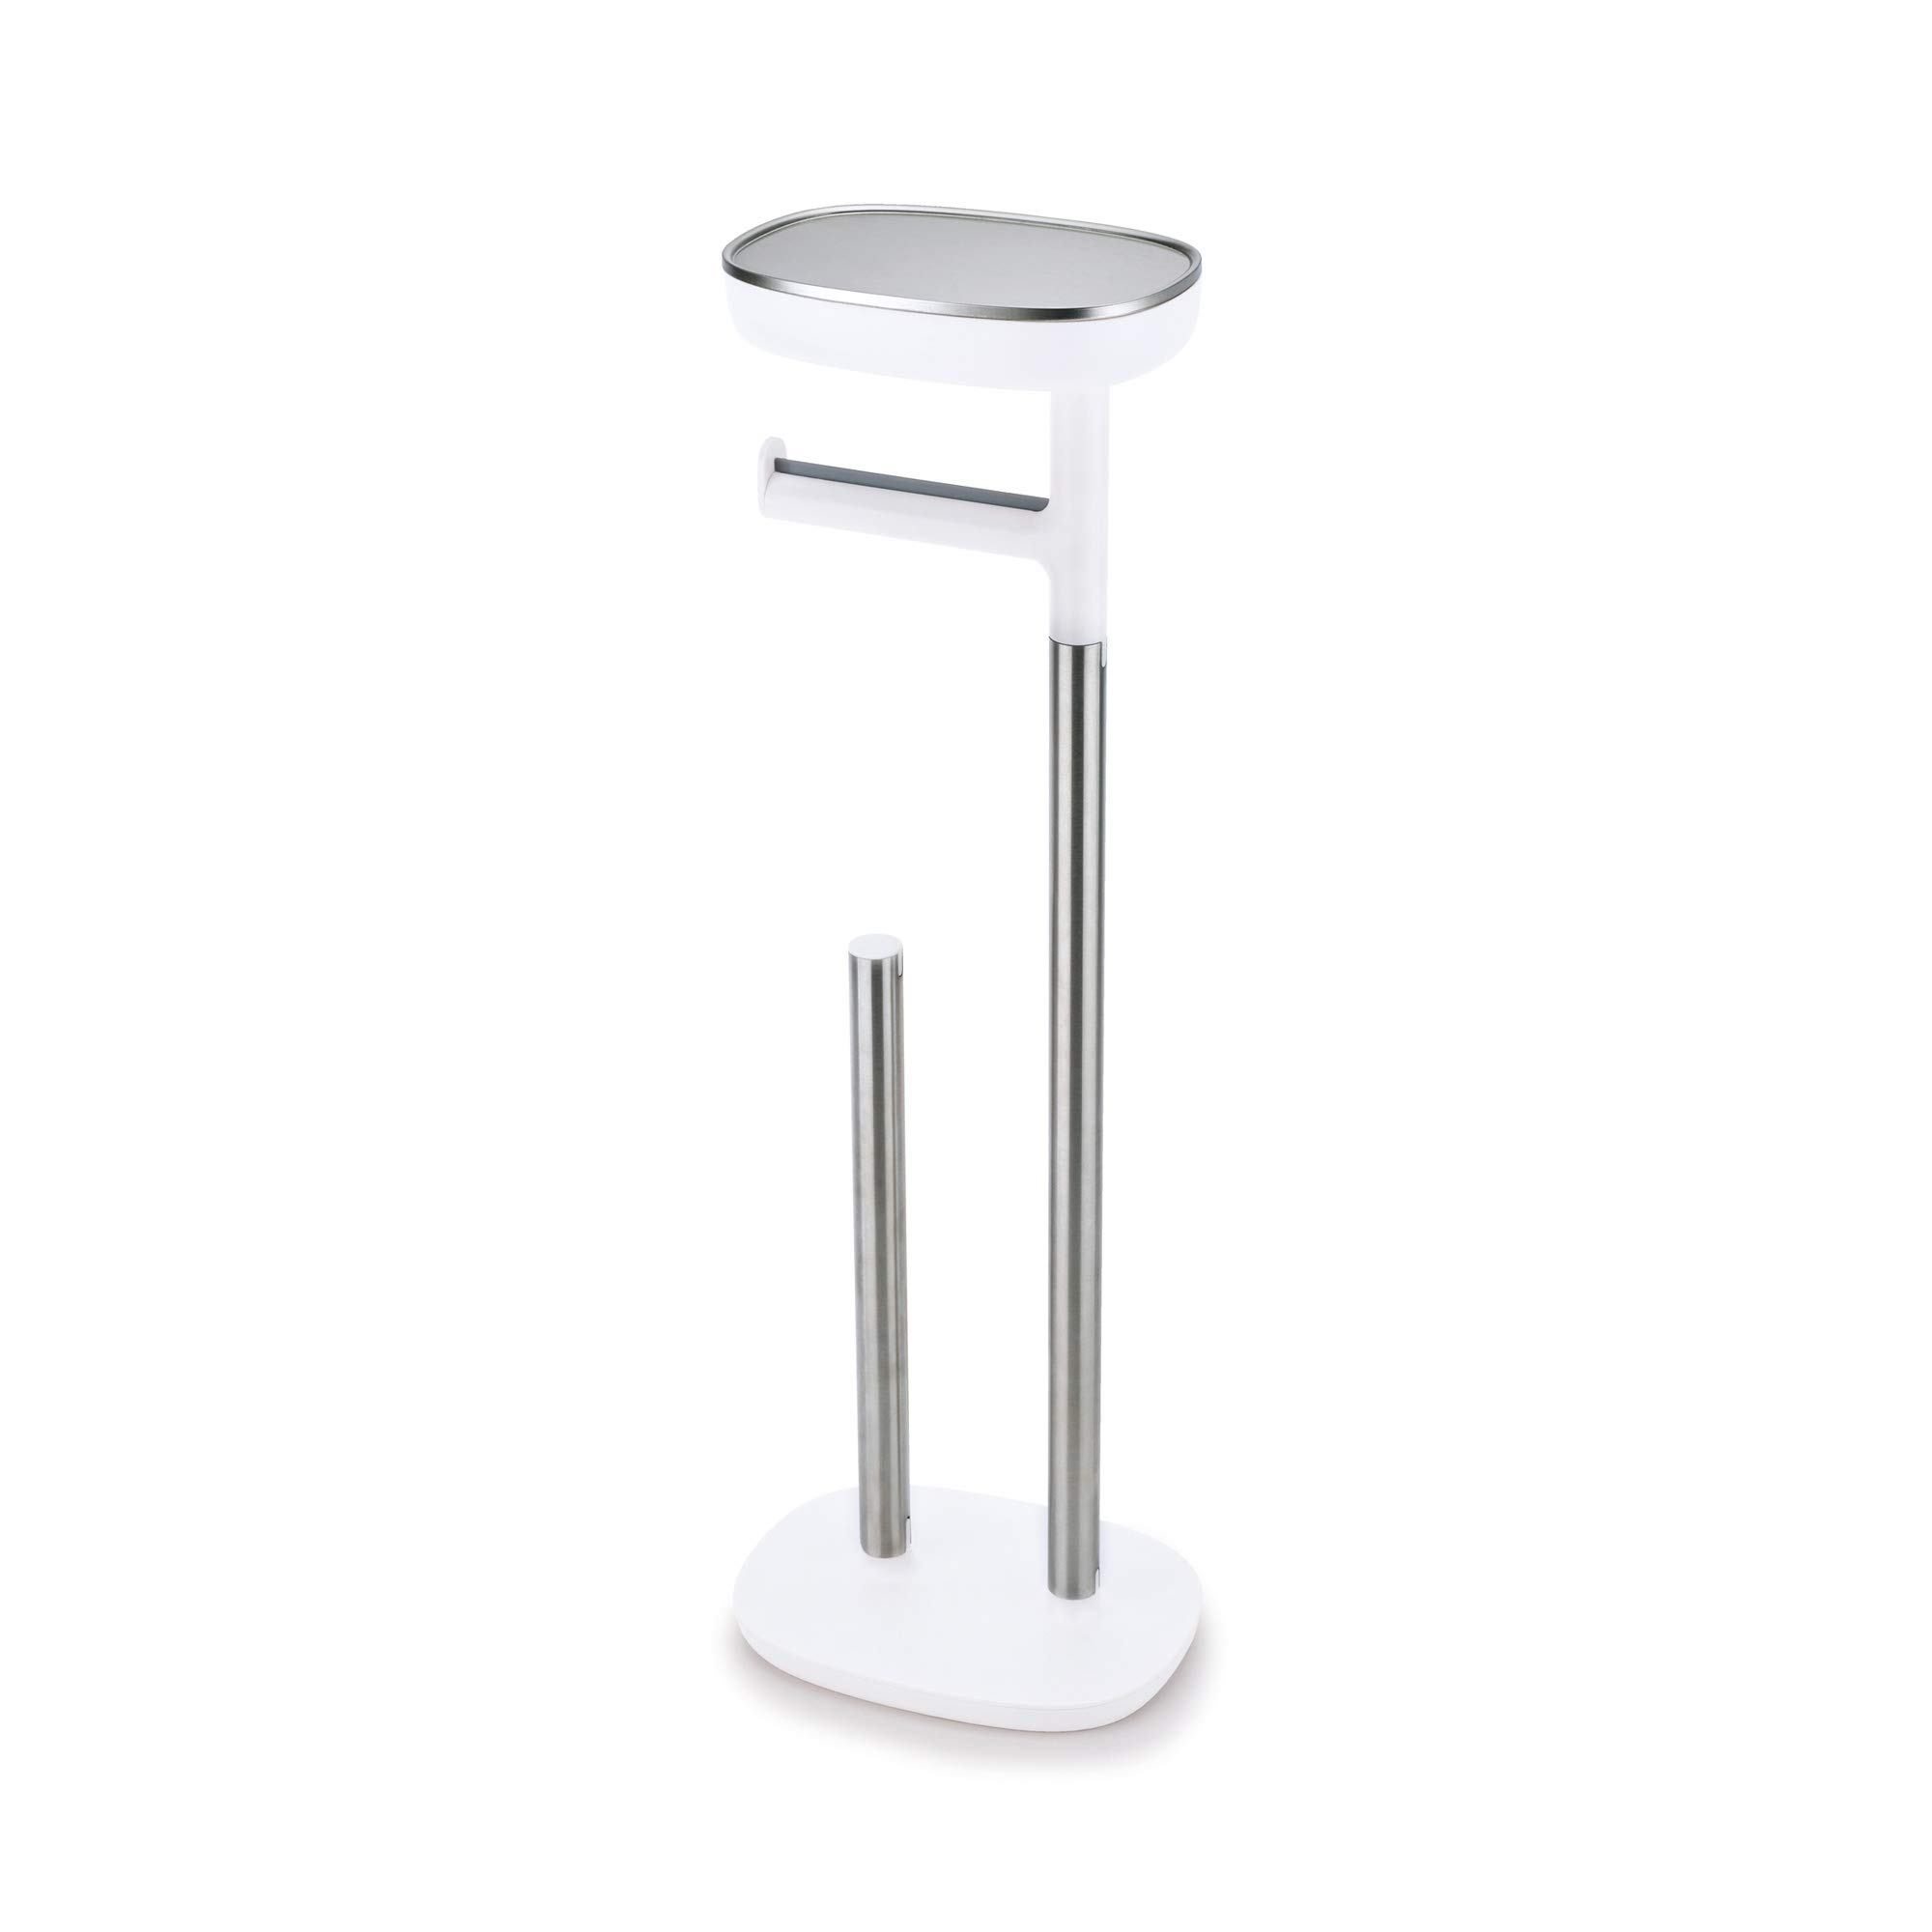 Joseph Joseph 70518 EasyStore Butler Toilet Paper Holder Stand and Spare Roll Storage with Shelf and Drawer, Stainless Steel by Joseph Joseph